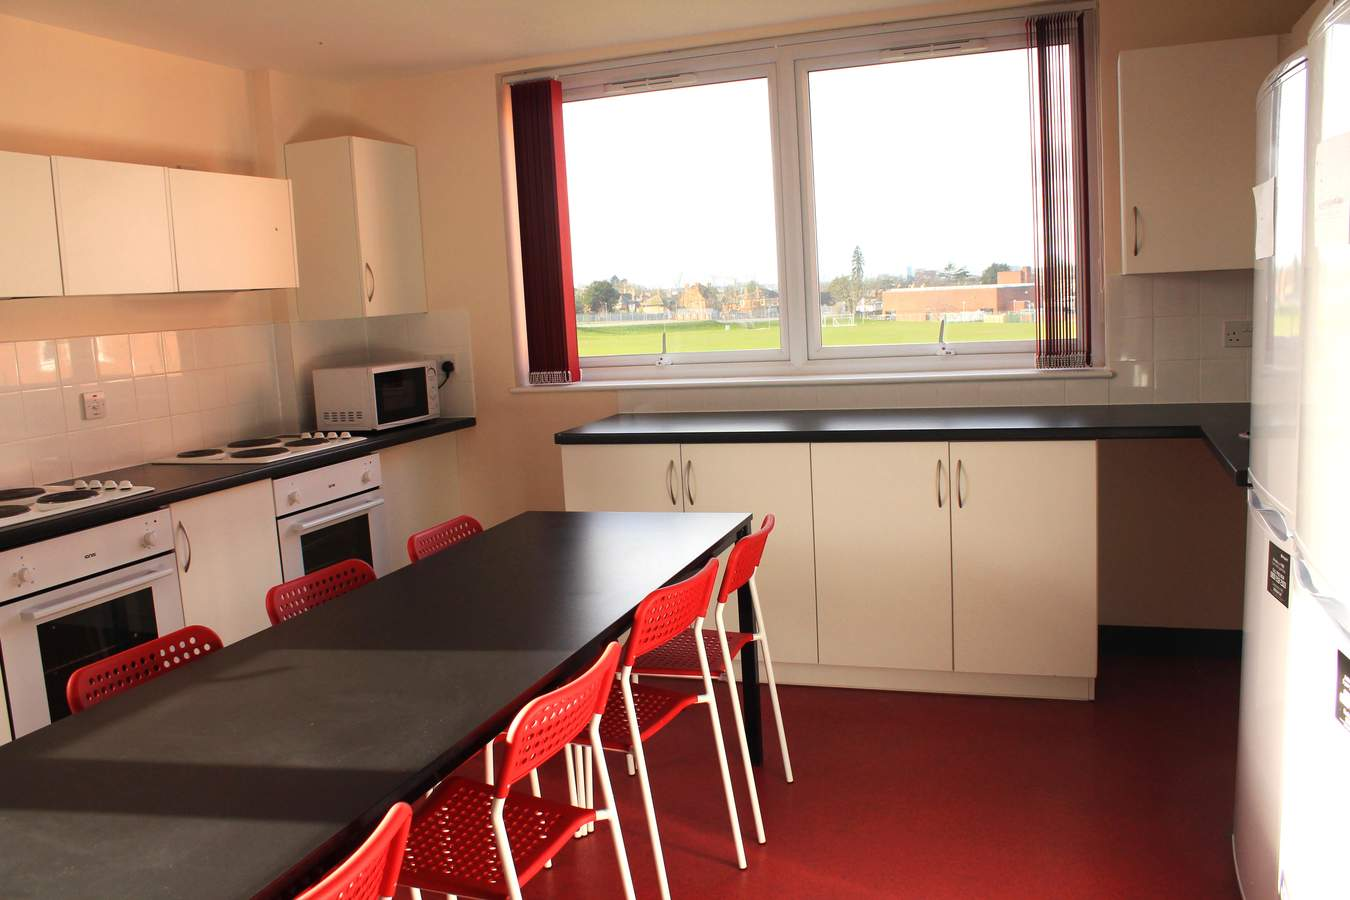 Kitchen-loddon-house-53076528f1f97